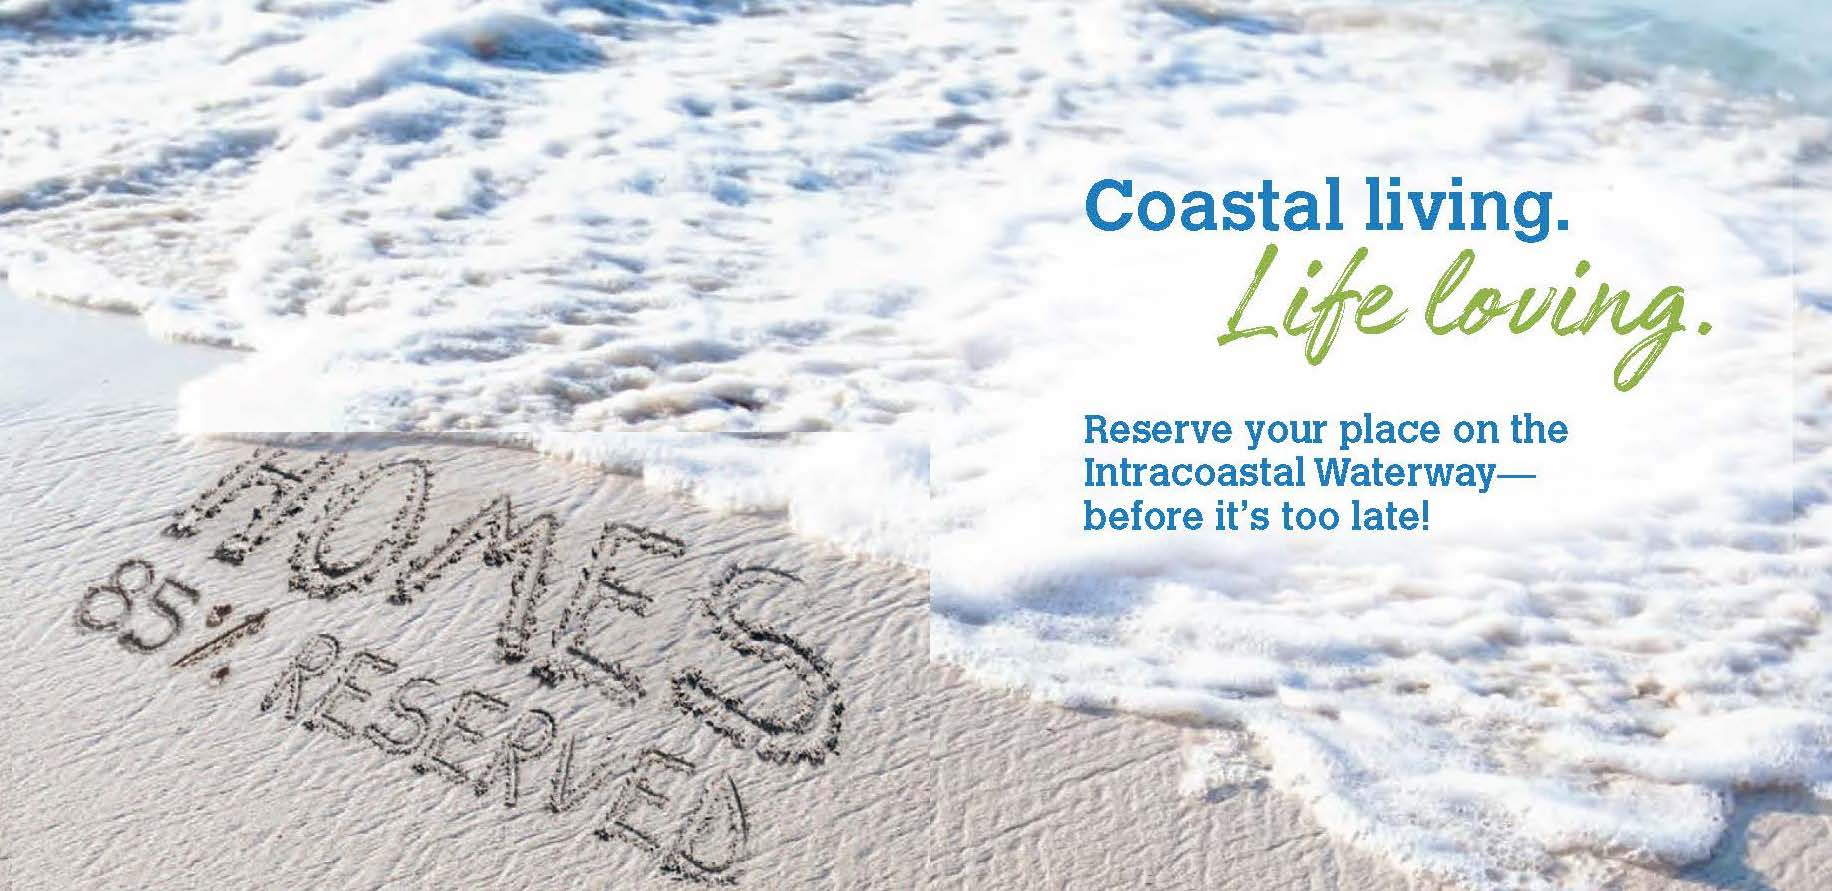 Coastal Living. Life Loving. Reserve your place on the Intracoastal Waterway before it's too late! Homes are 85% Reserved!